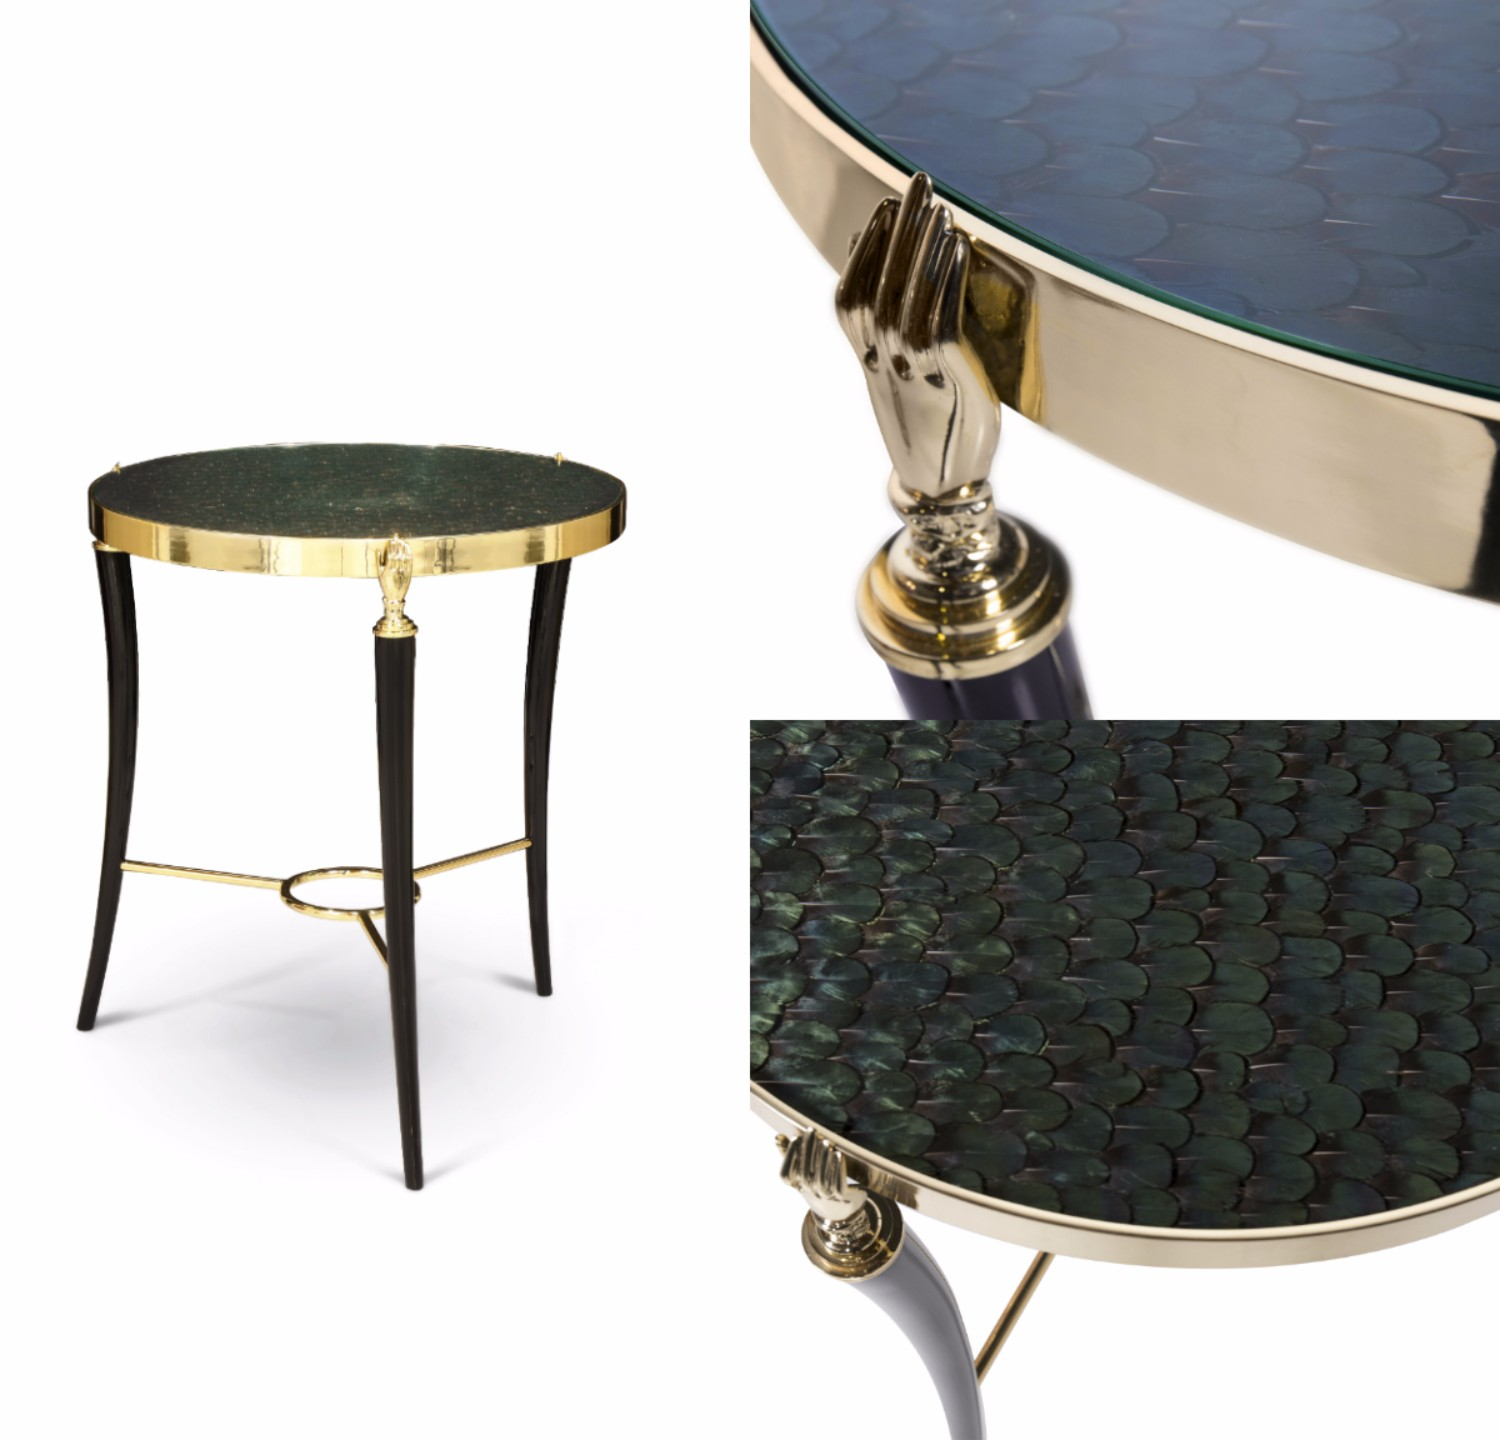 Gisele side table by KOKET at Decorex - luxury side table - brass side table - feather table top - brass hands - luxury furniture